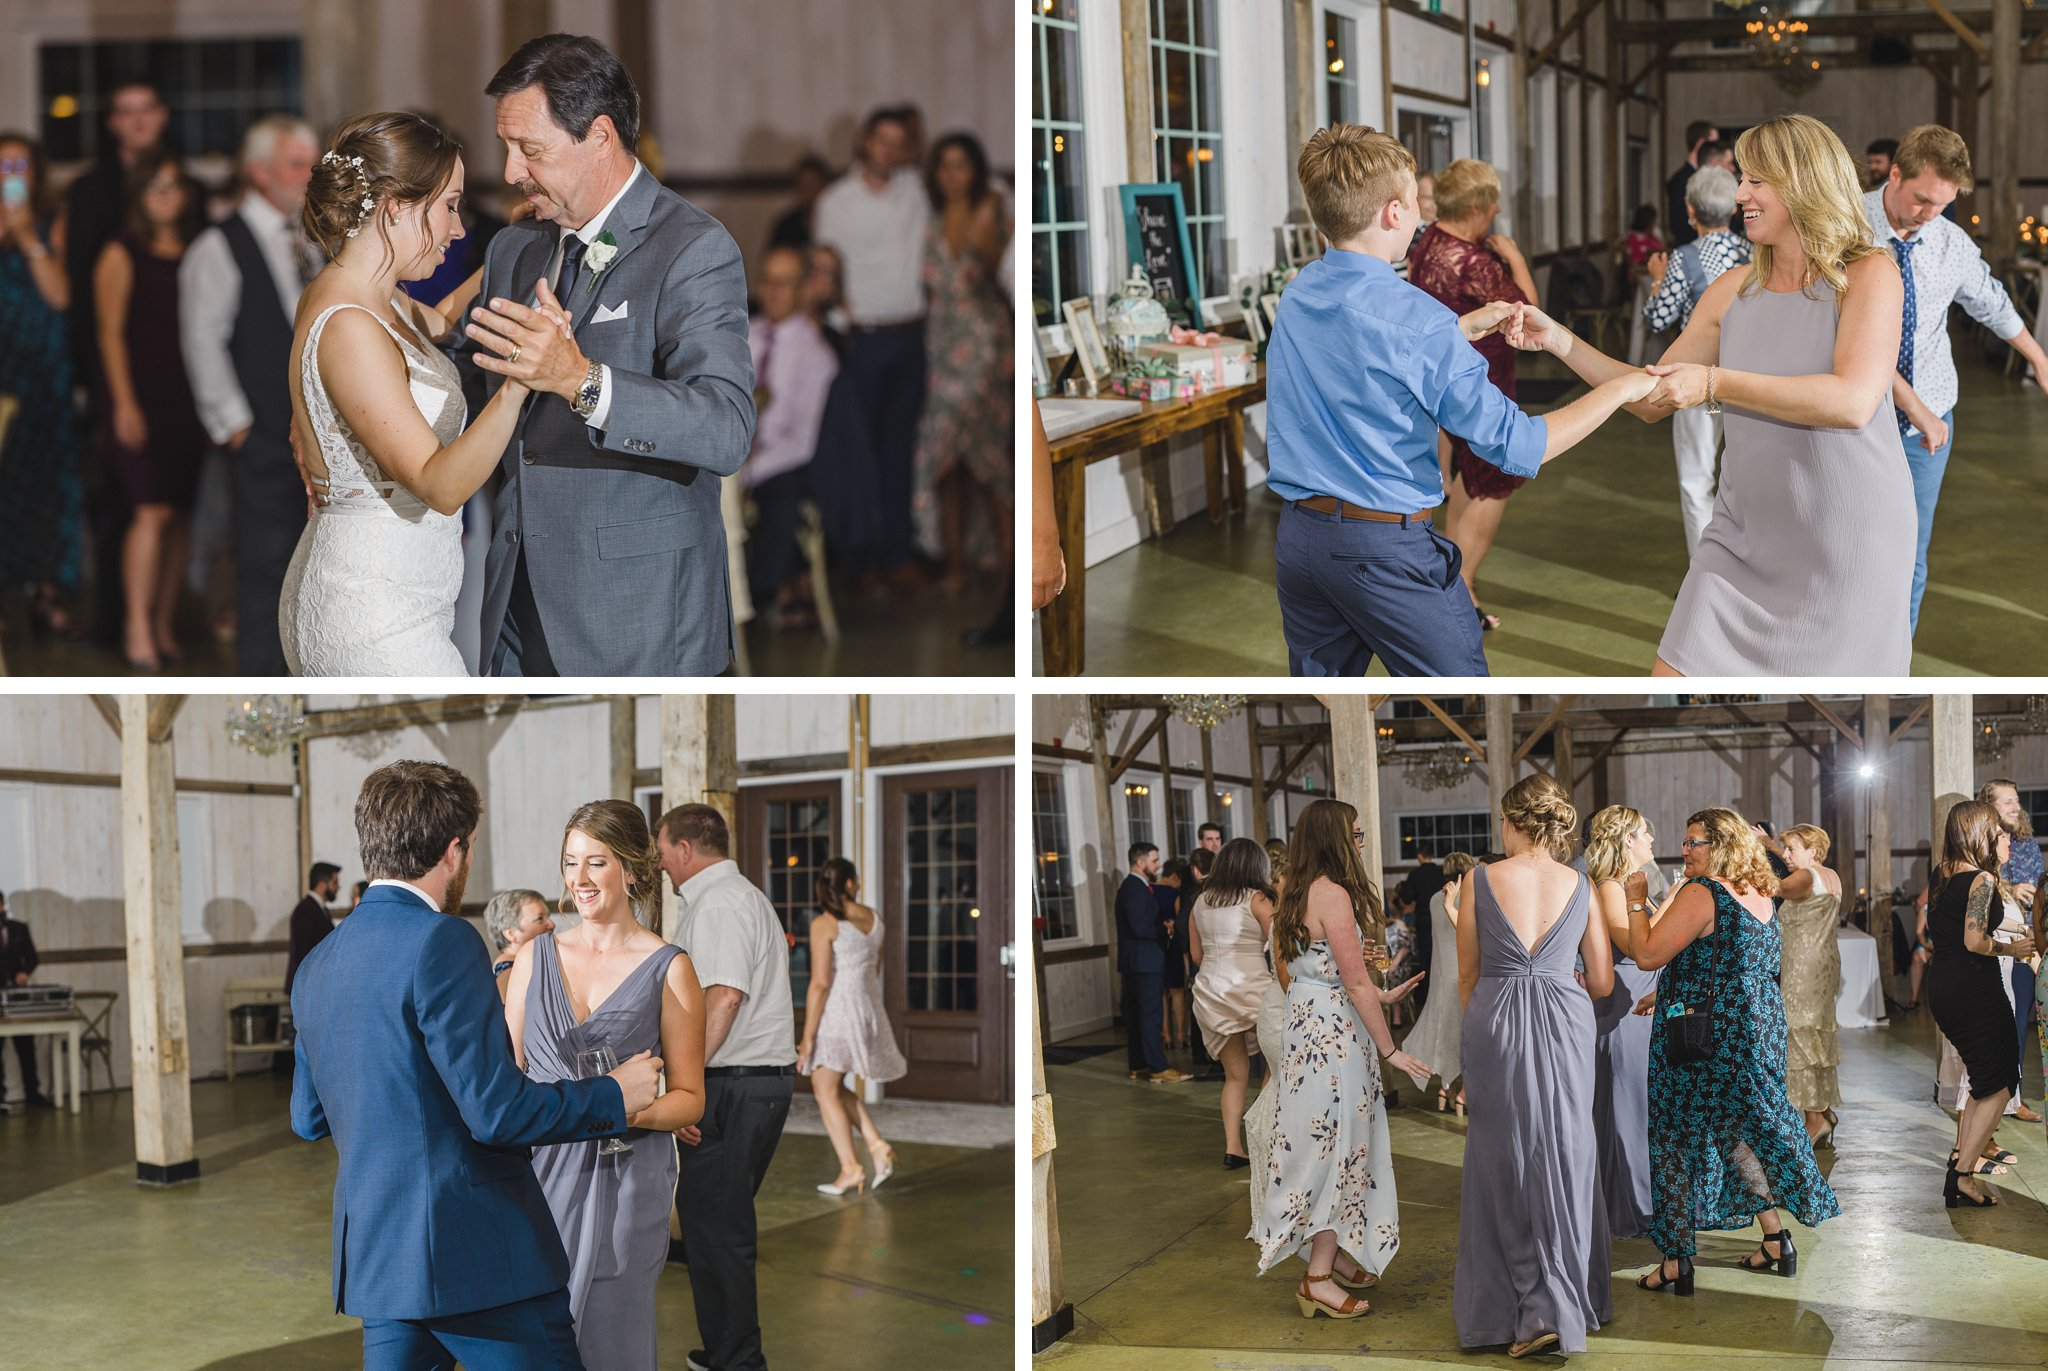 Party dancing at reception married at Stonefields, Amy Pinder Photography